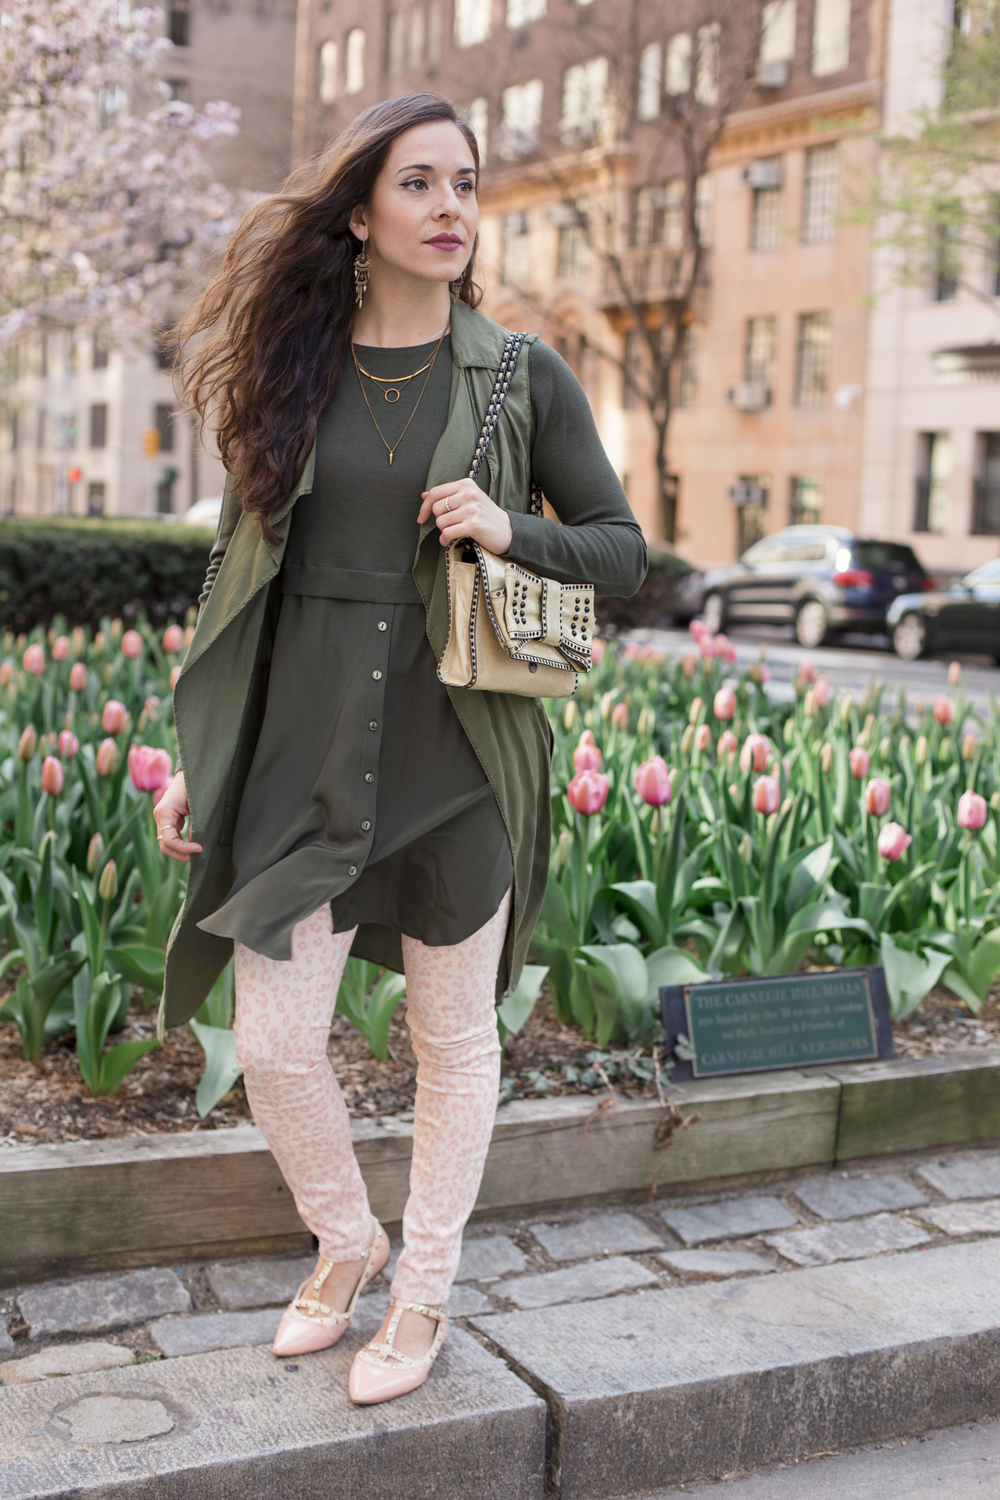 In my  W by Worth  top,  Zara  long vest,  H&M  skinnies,  Valentino  rock stud flats, and  Rebecca Minkoff  purse while strolling Park Ave.  Photography by  Francisco Graciano .